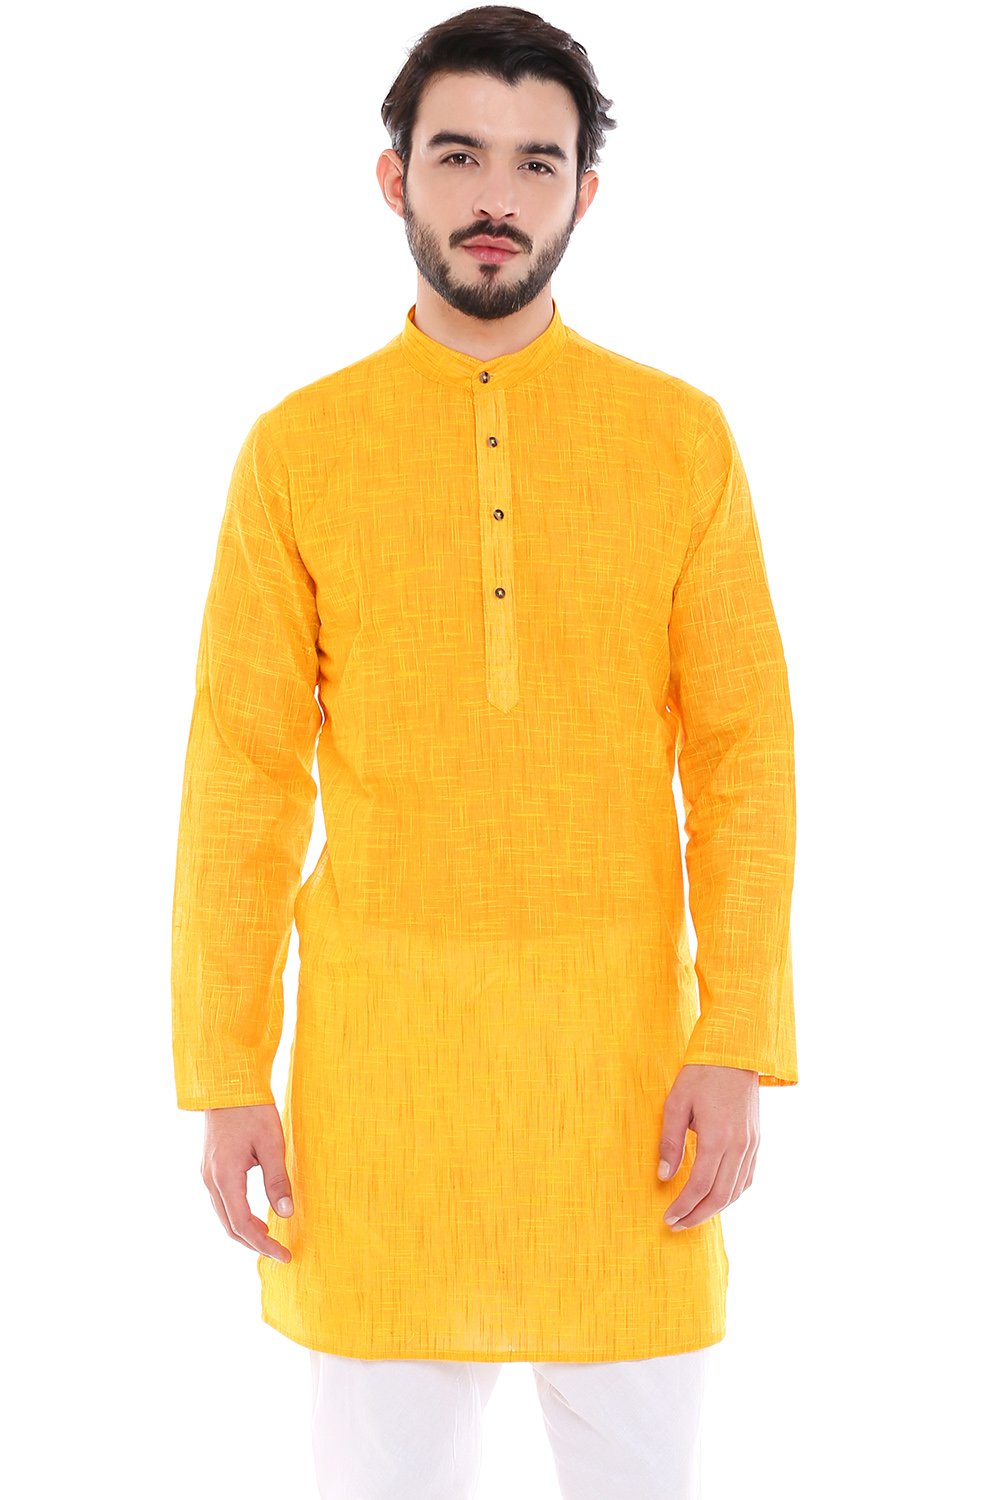 In-Sattva Men's Indian Classic Pure Cotton Kurta Tunic with Mandarin Collar; Yellow; MD